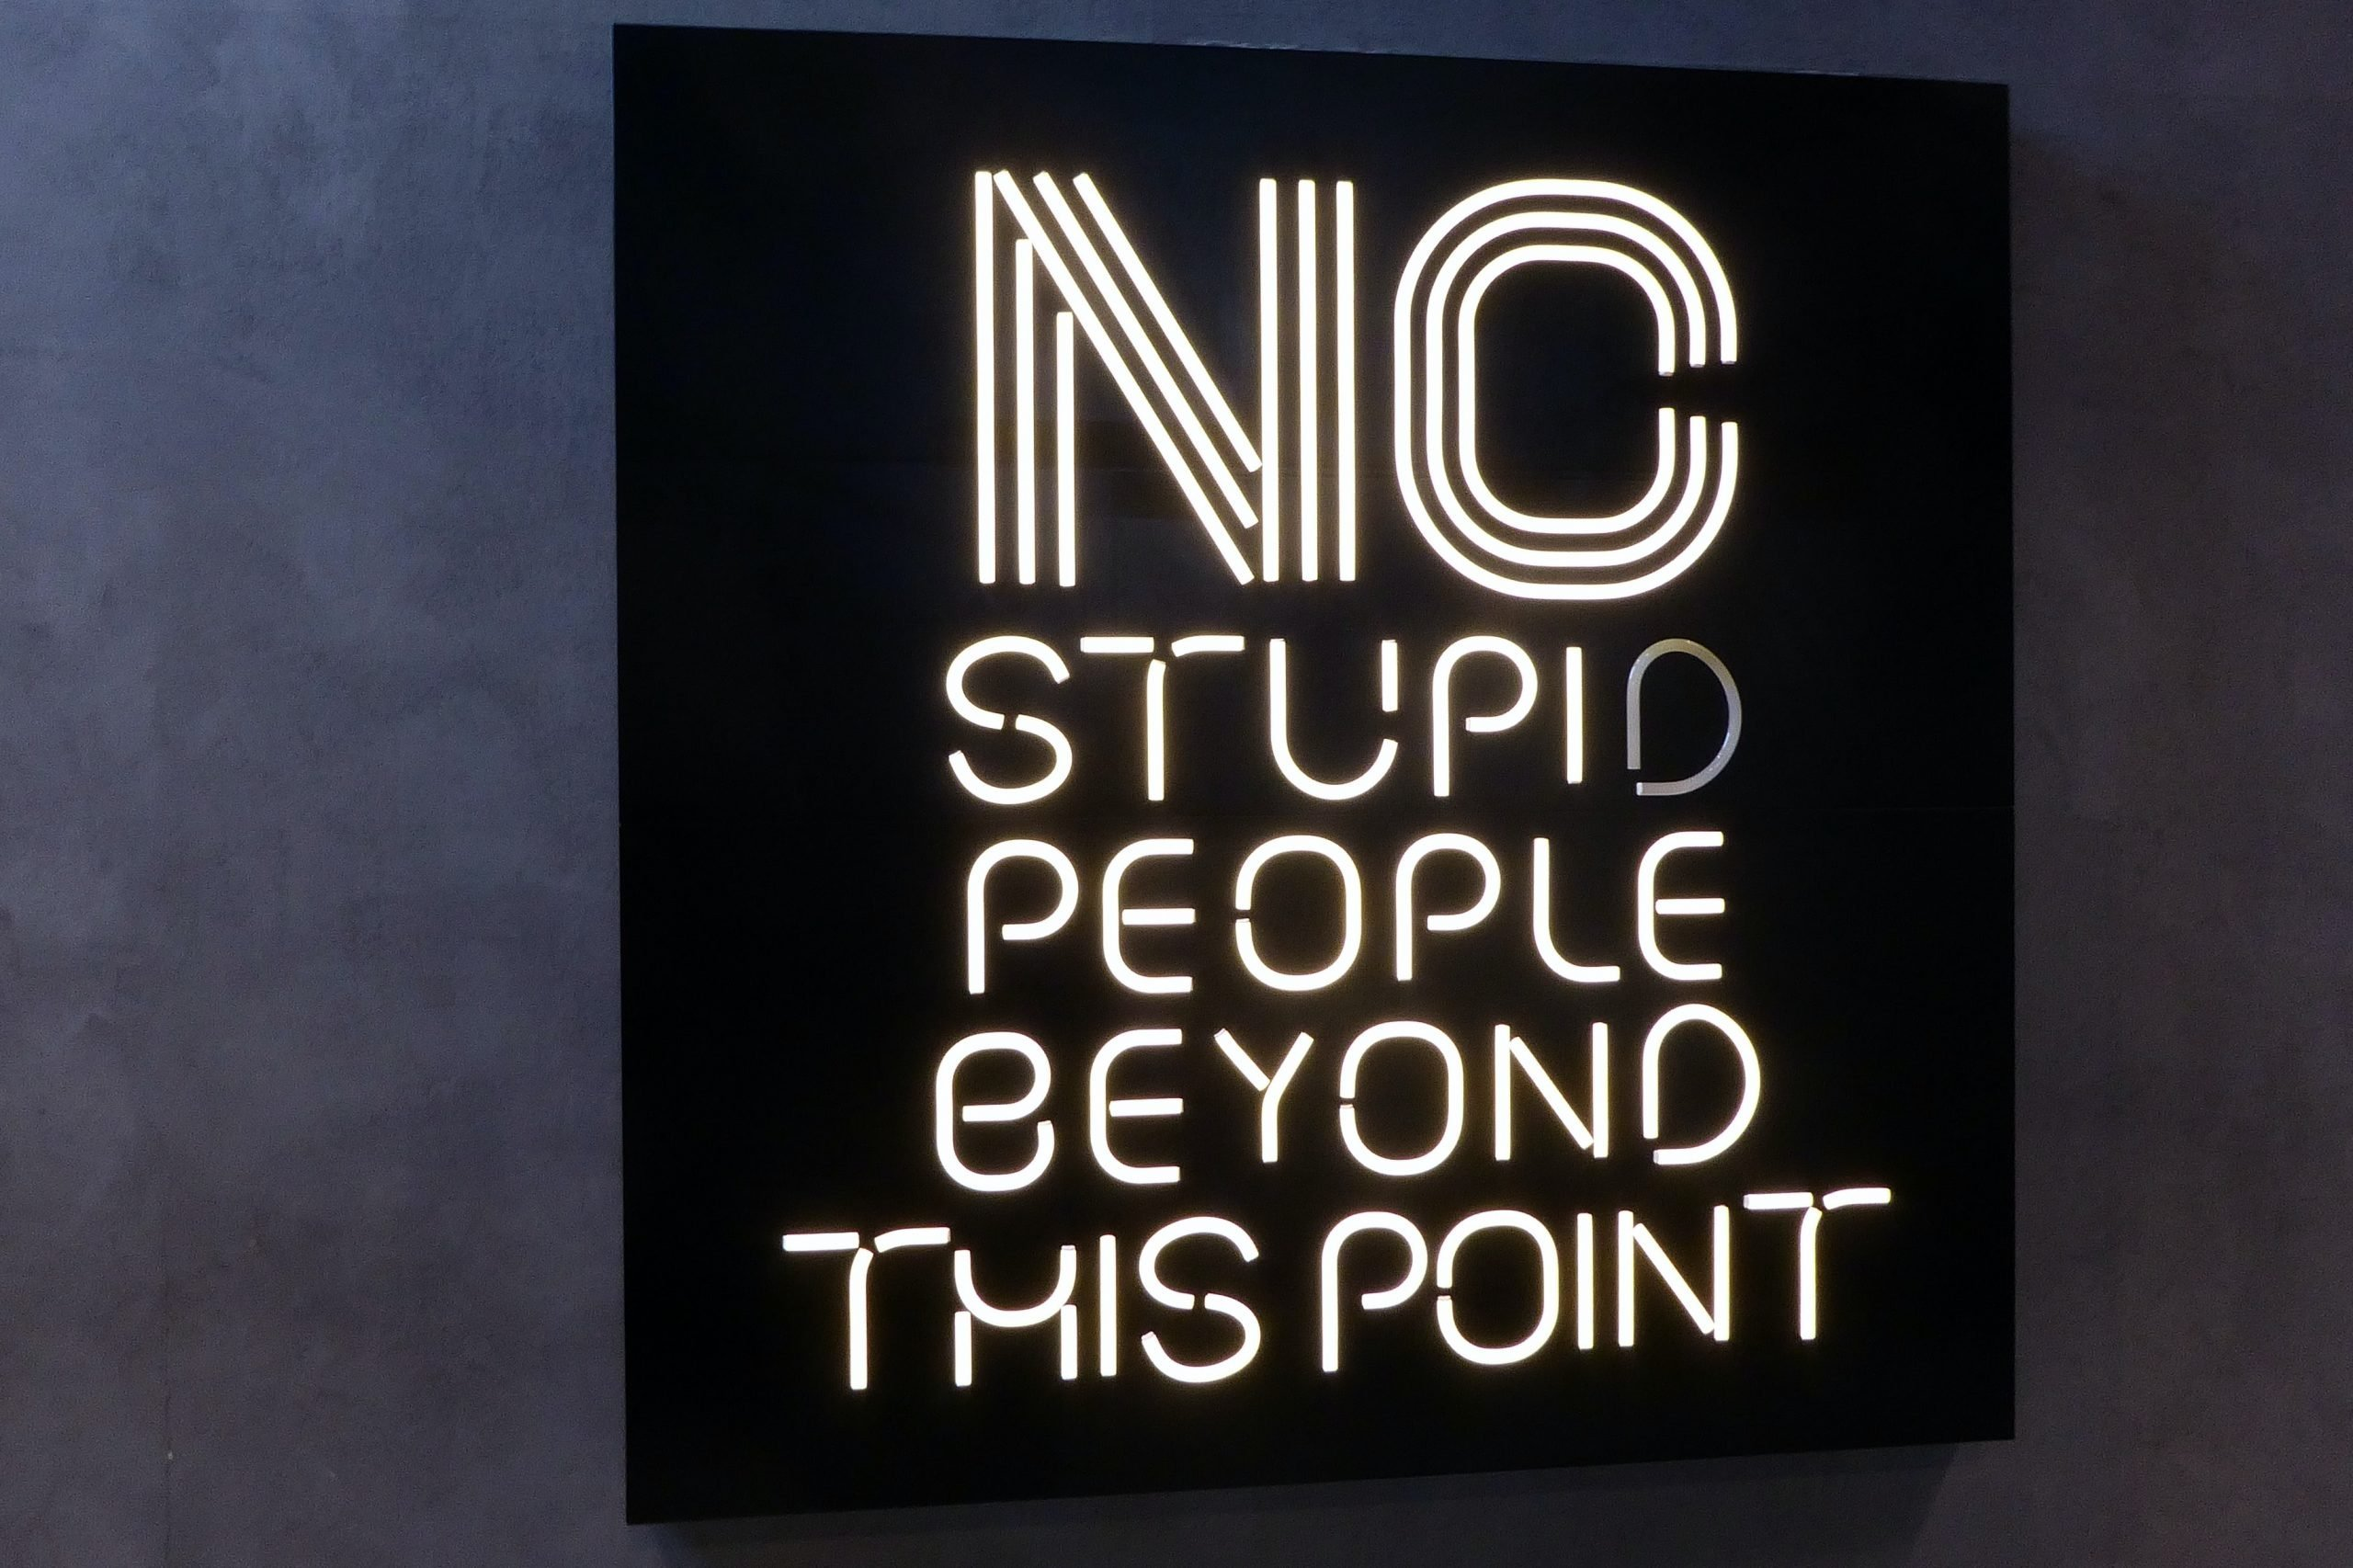 No stupid people beyond this point